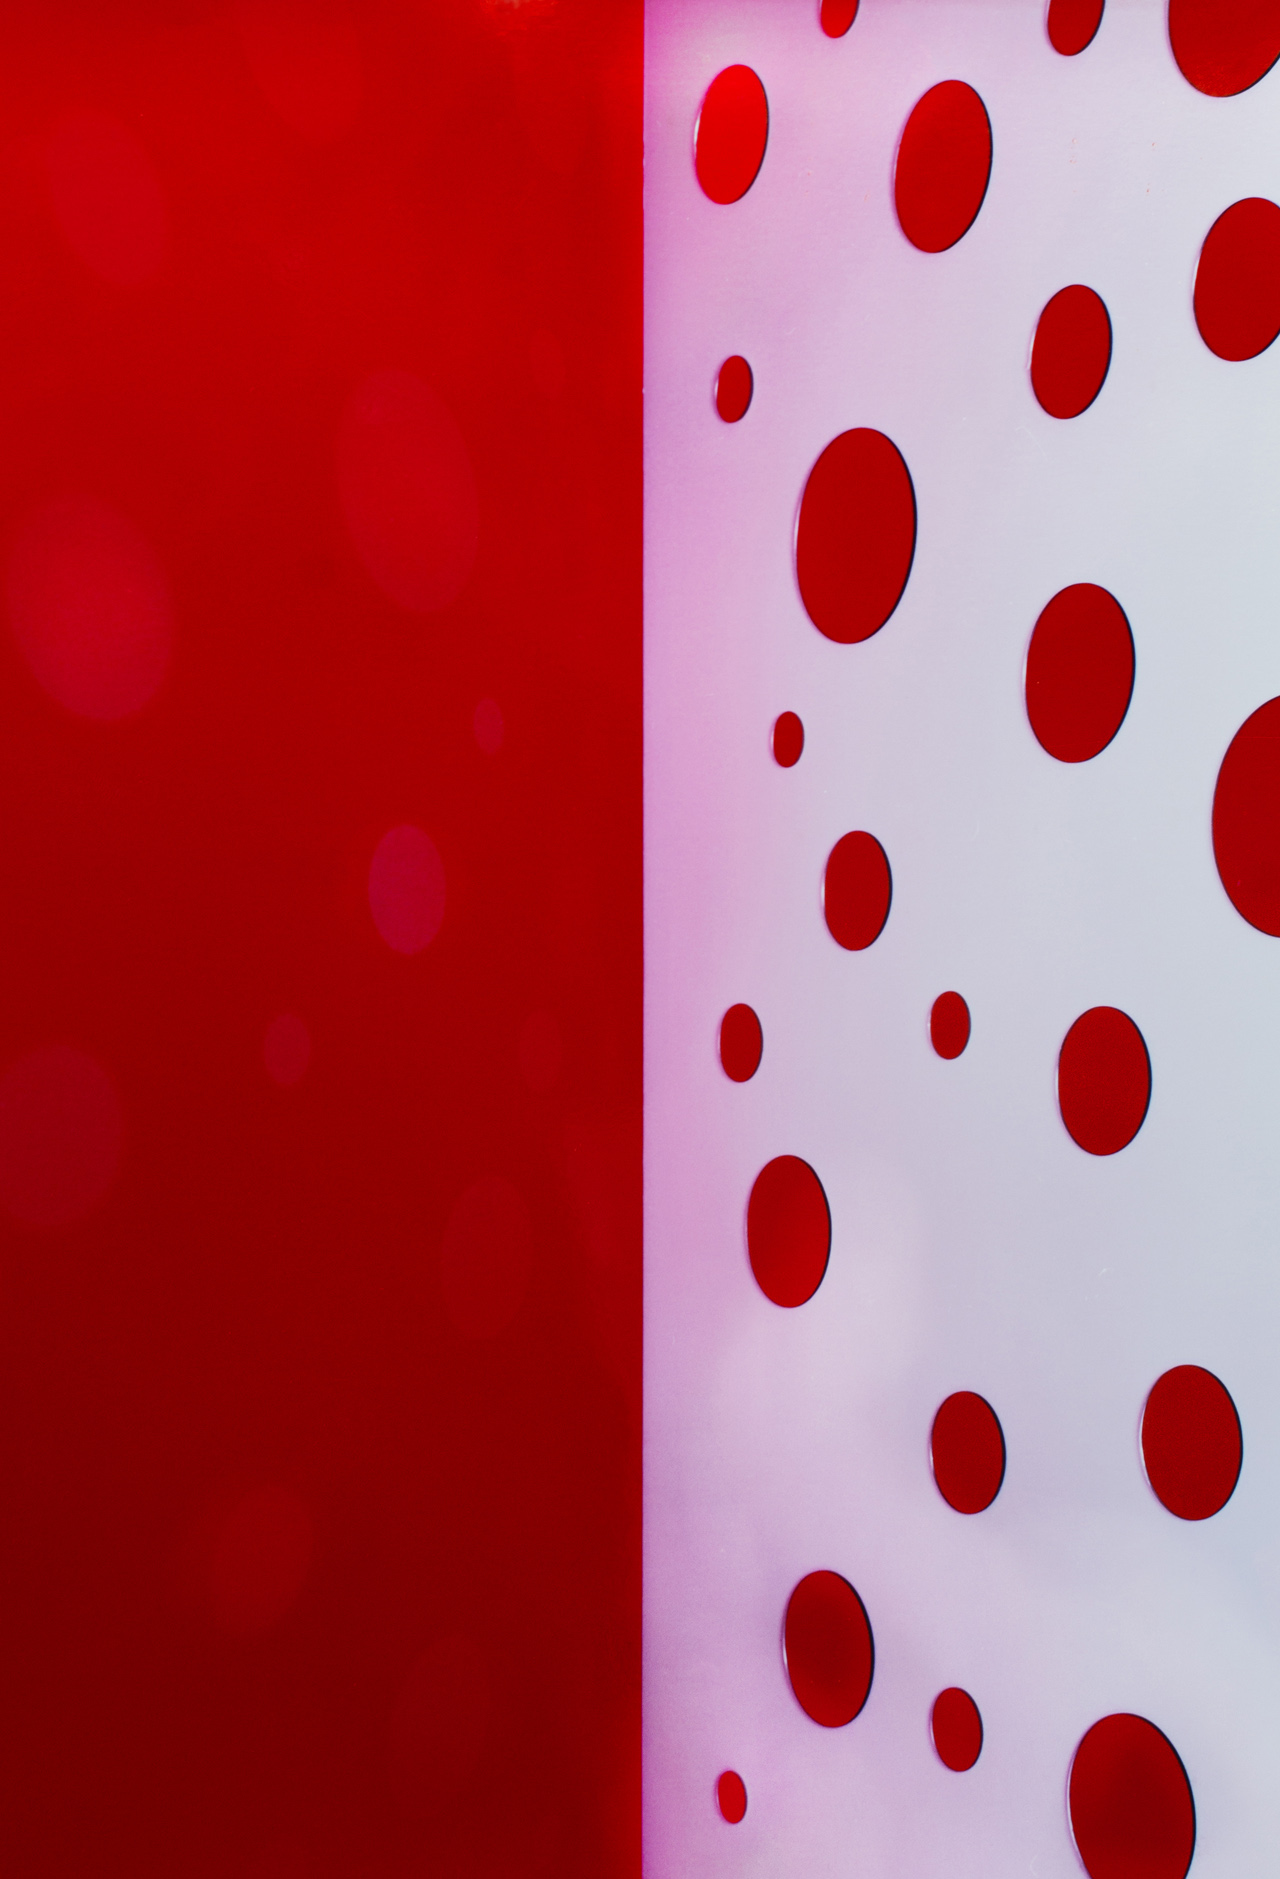 ©Jacky Redgate Light Throw (Mirrors) Red and White, 2019 LR.jpg